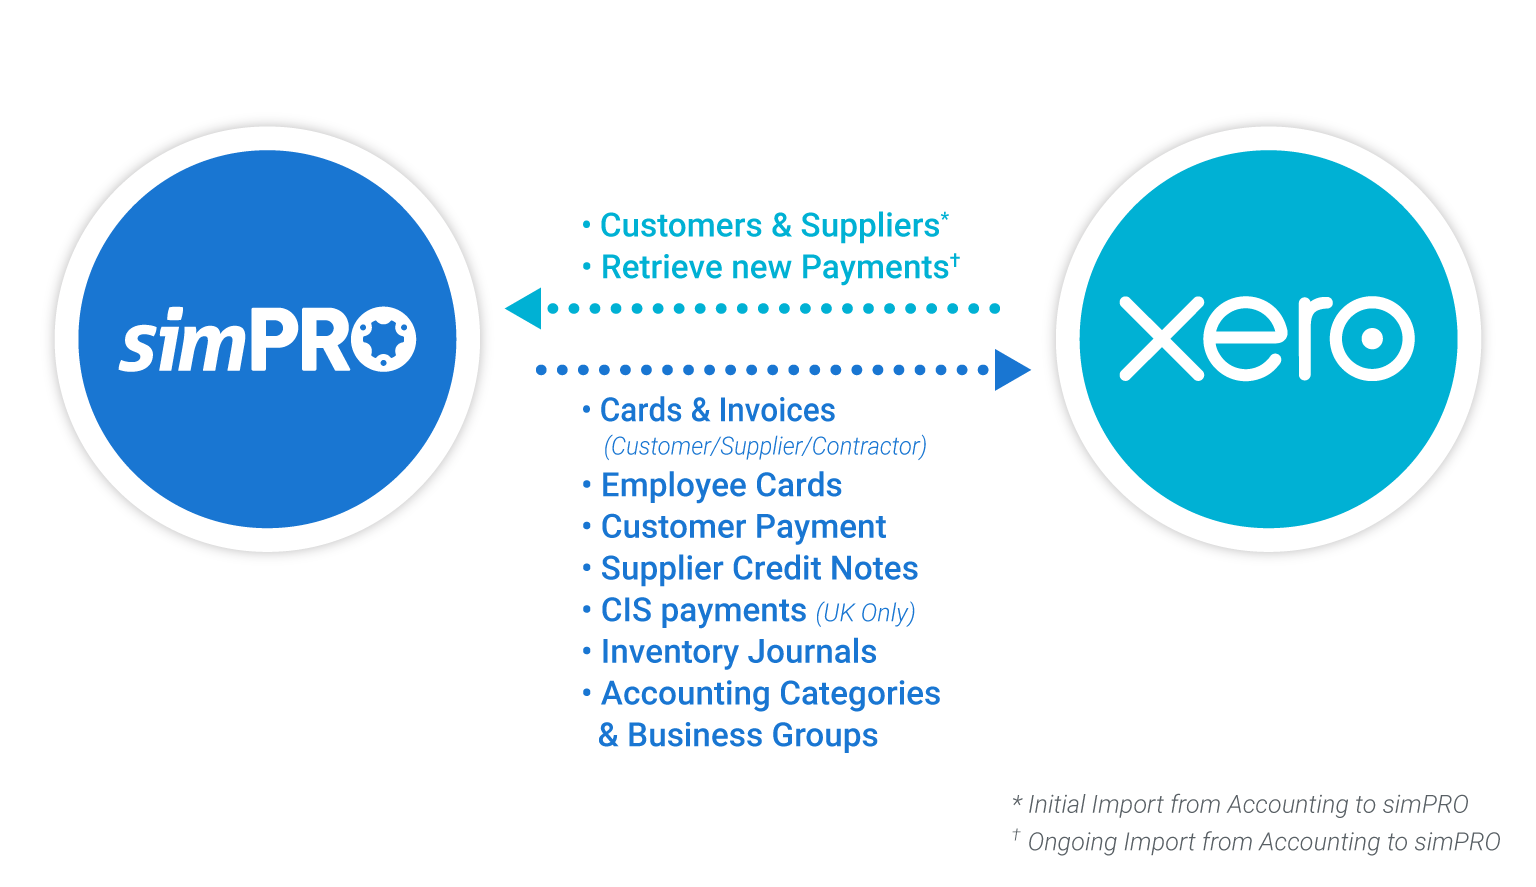 simPRO and Xero functionality composition desktop